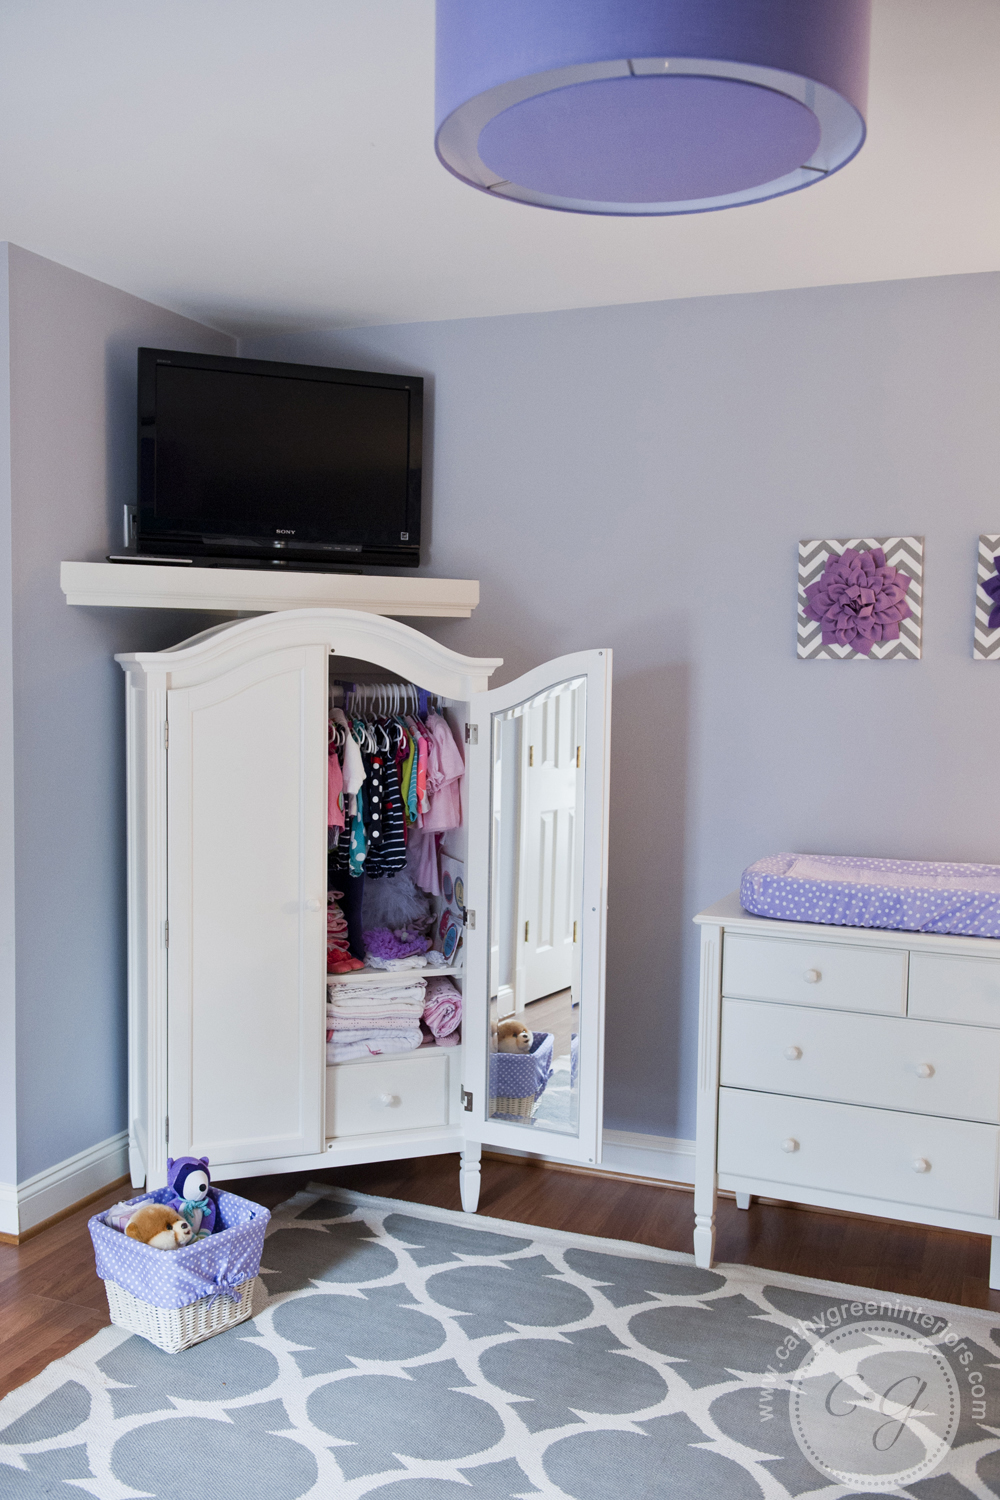 Chesterfield nursery armoire.jpg